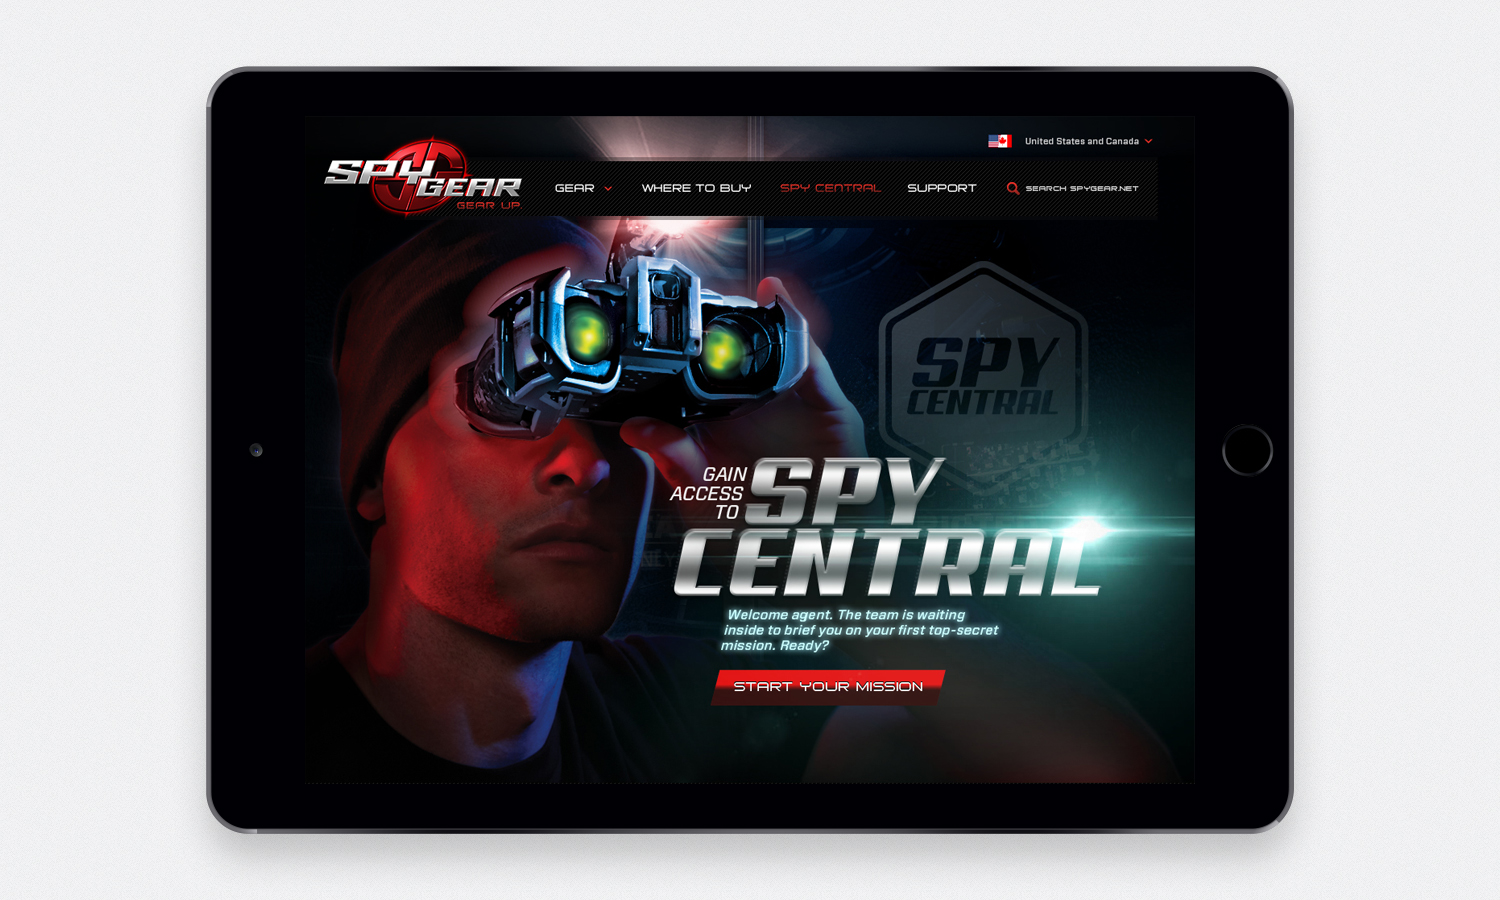 SpyCentral_Home2_iPad.jpg